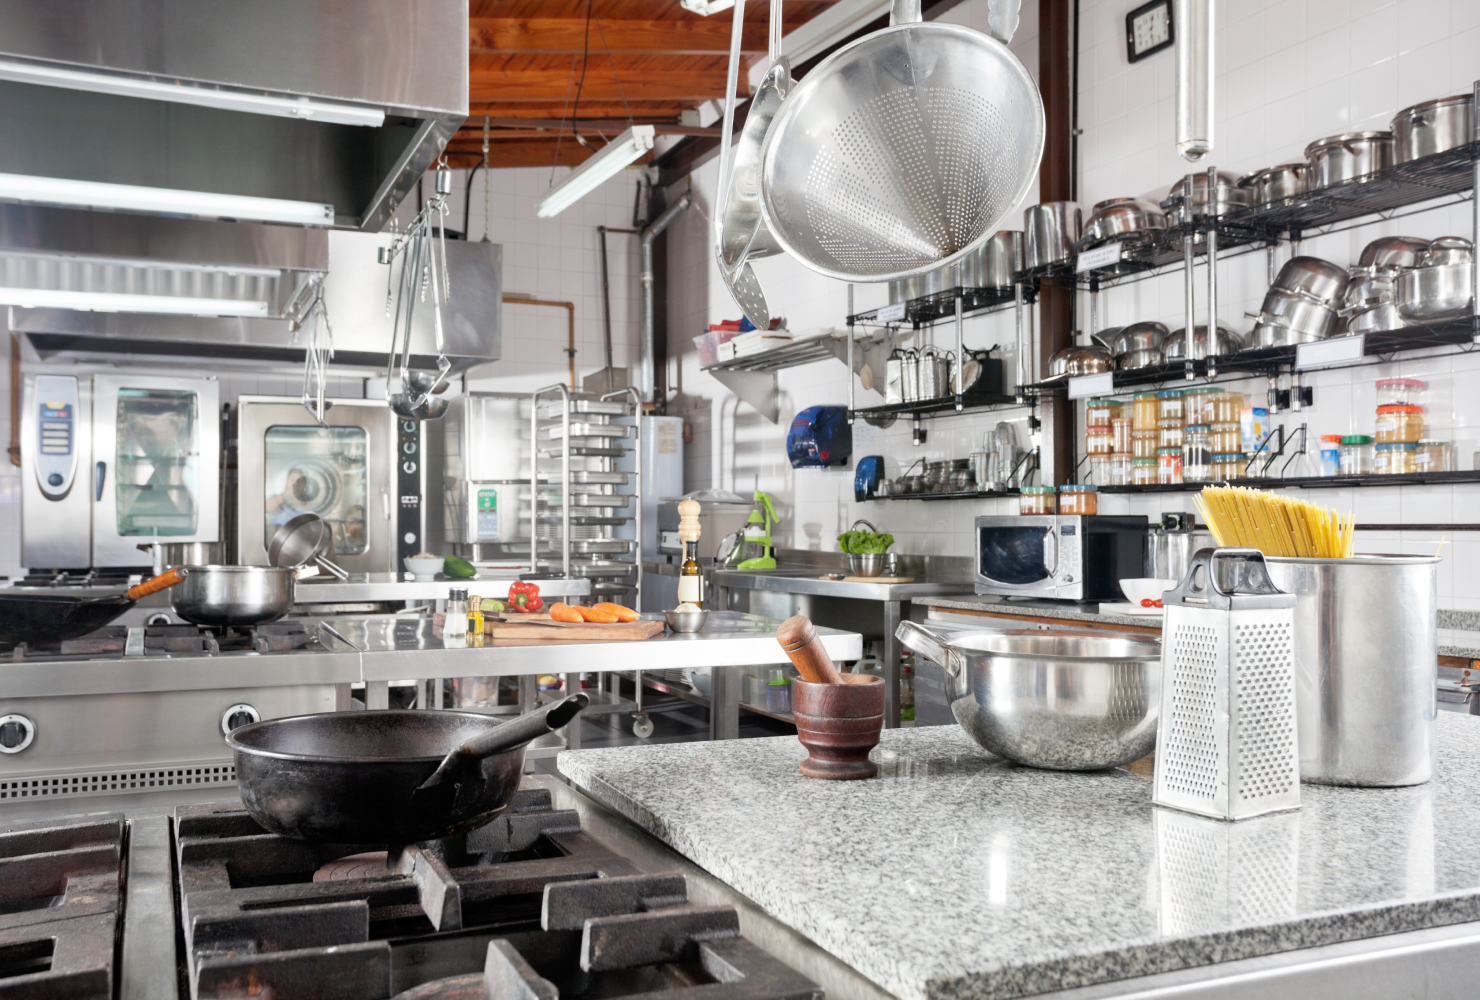 Modern Kitchen 2020: What should be on your worktop?